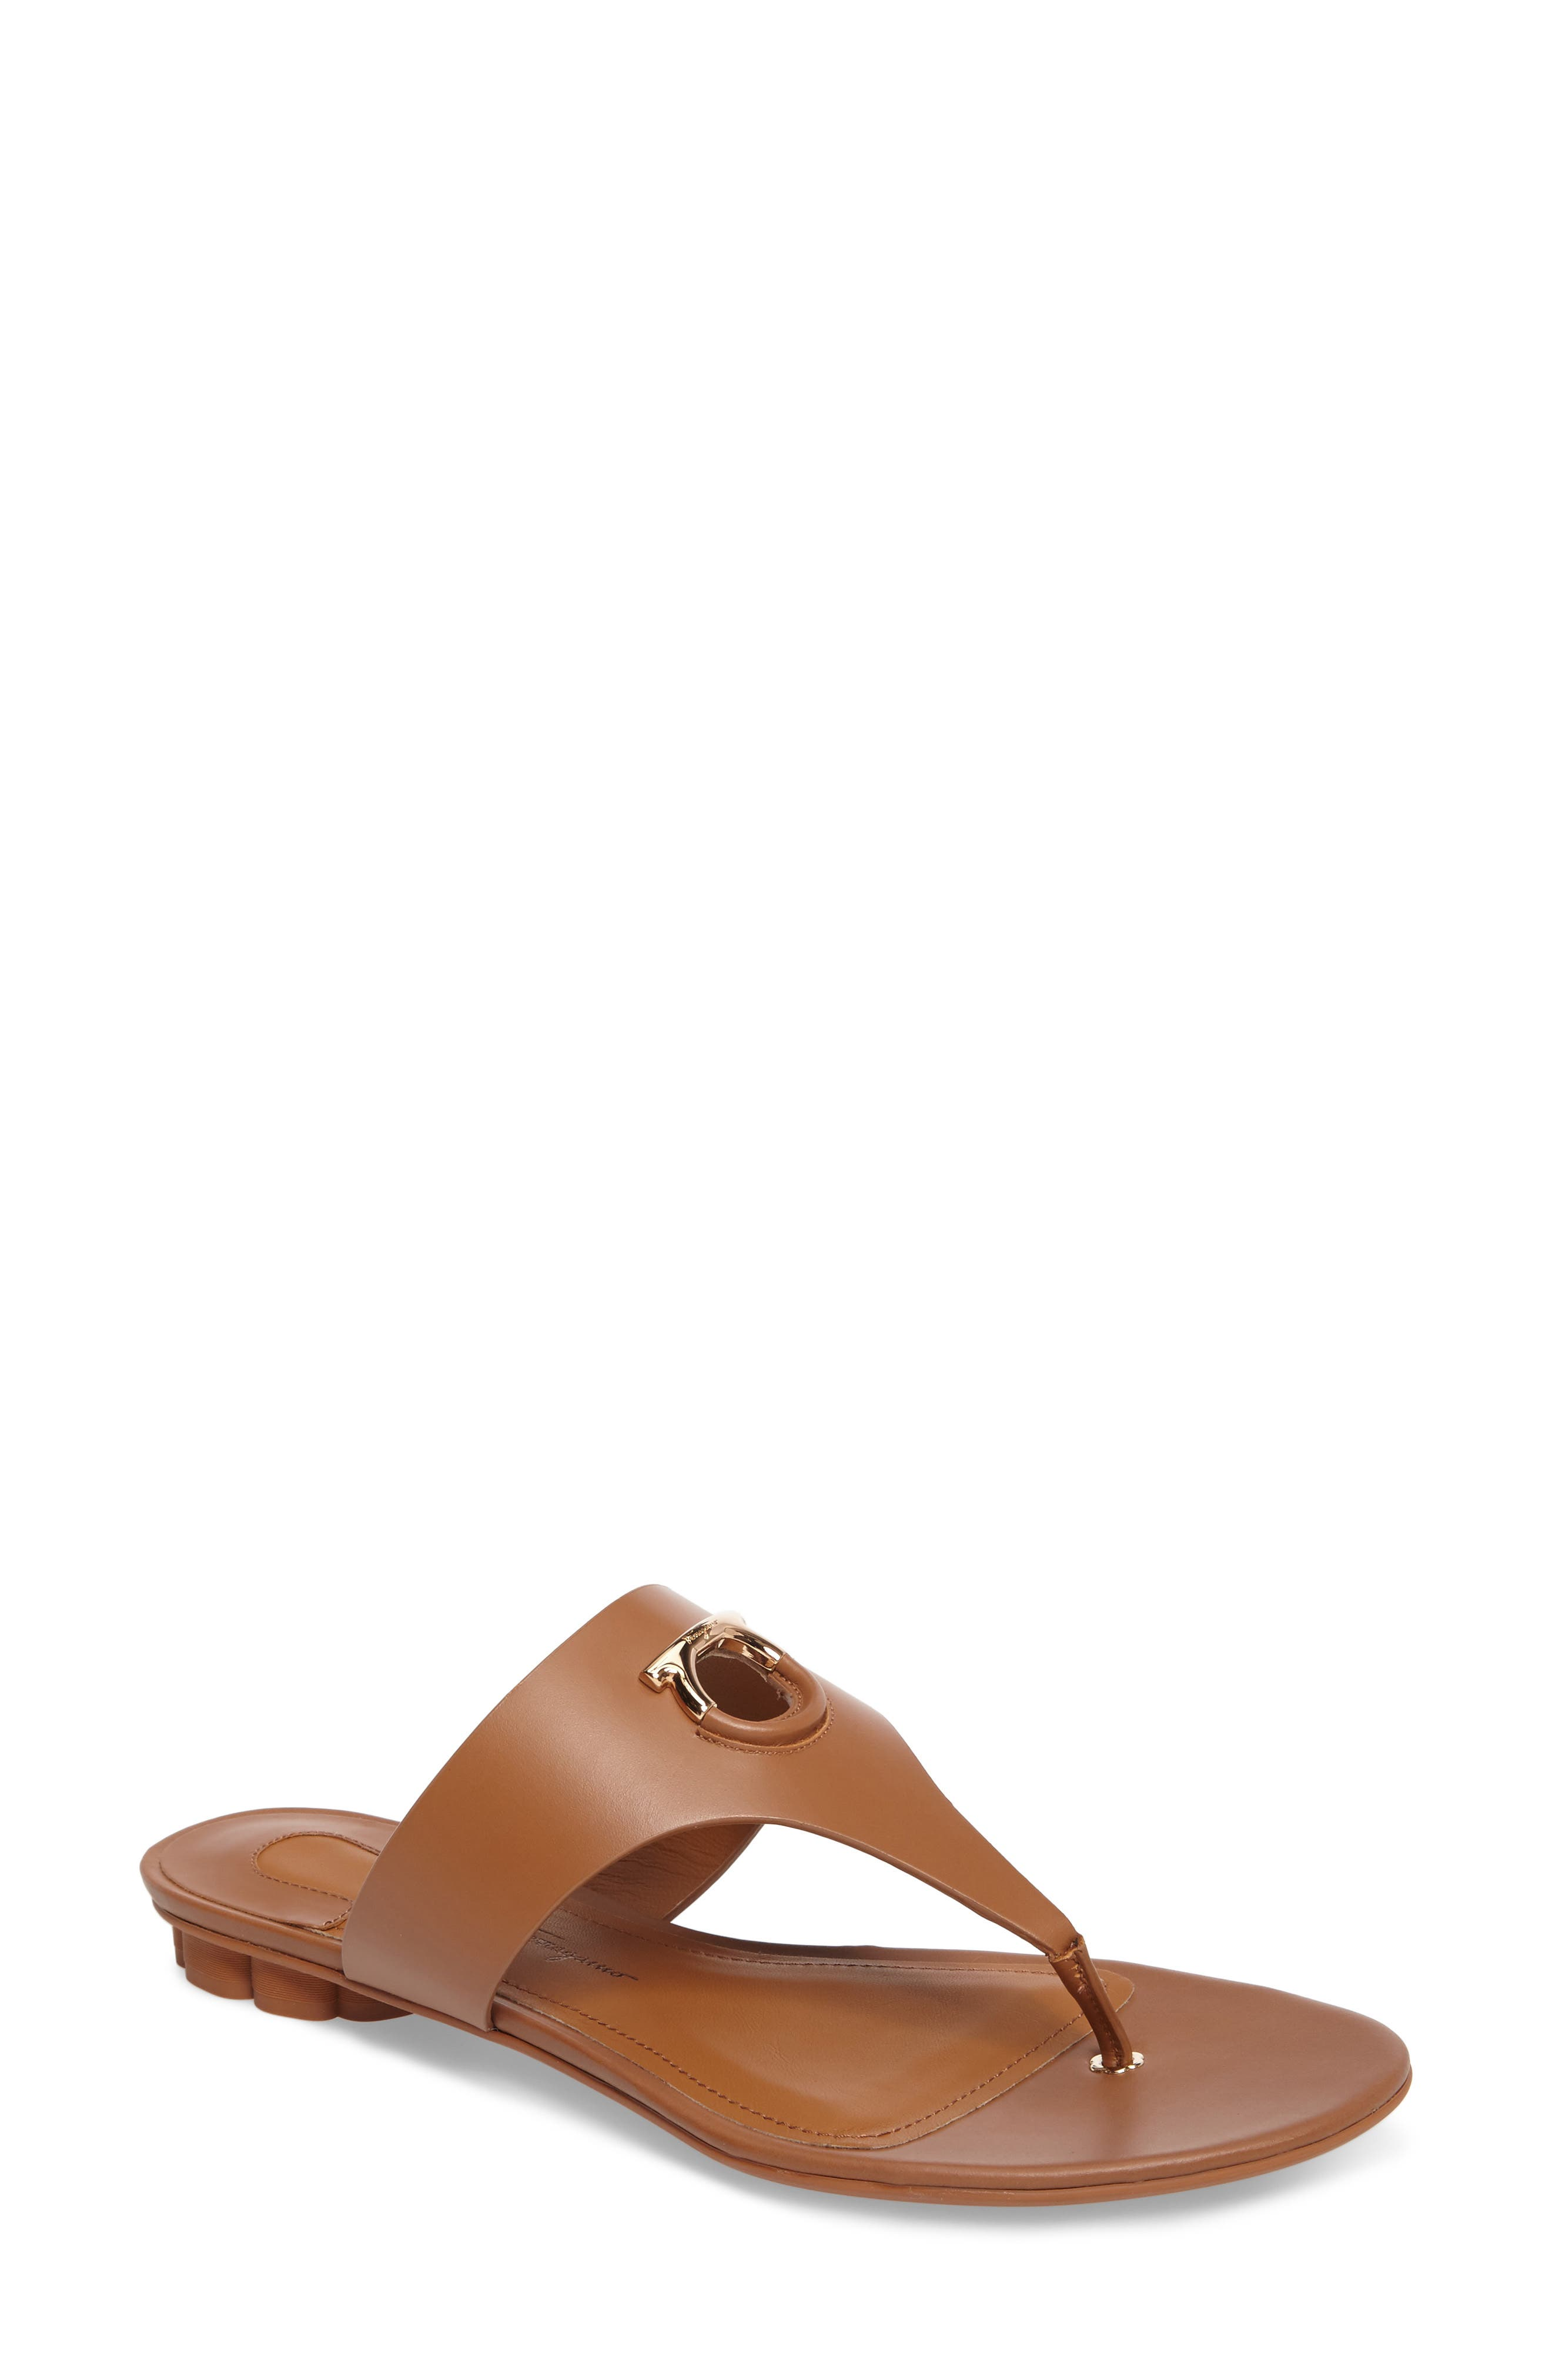 Salvatore Ferragamo Enfola Thong Sandal (Women)